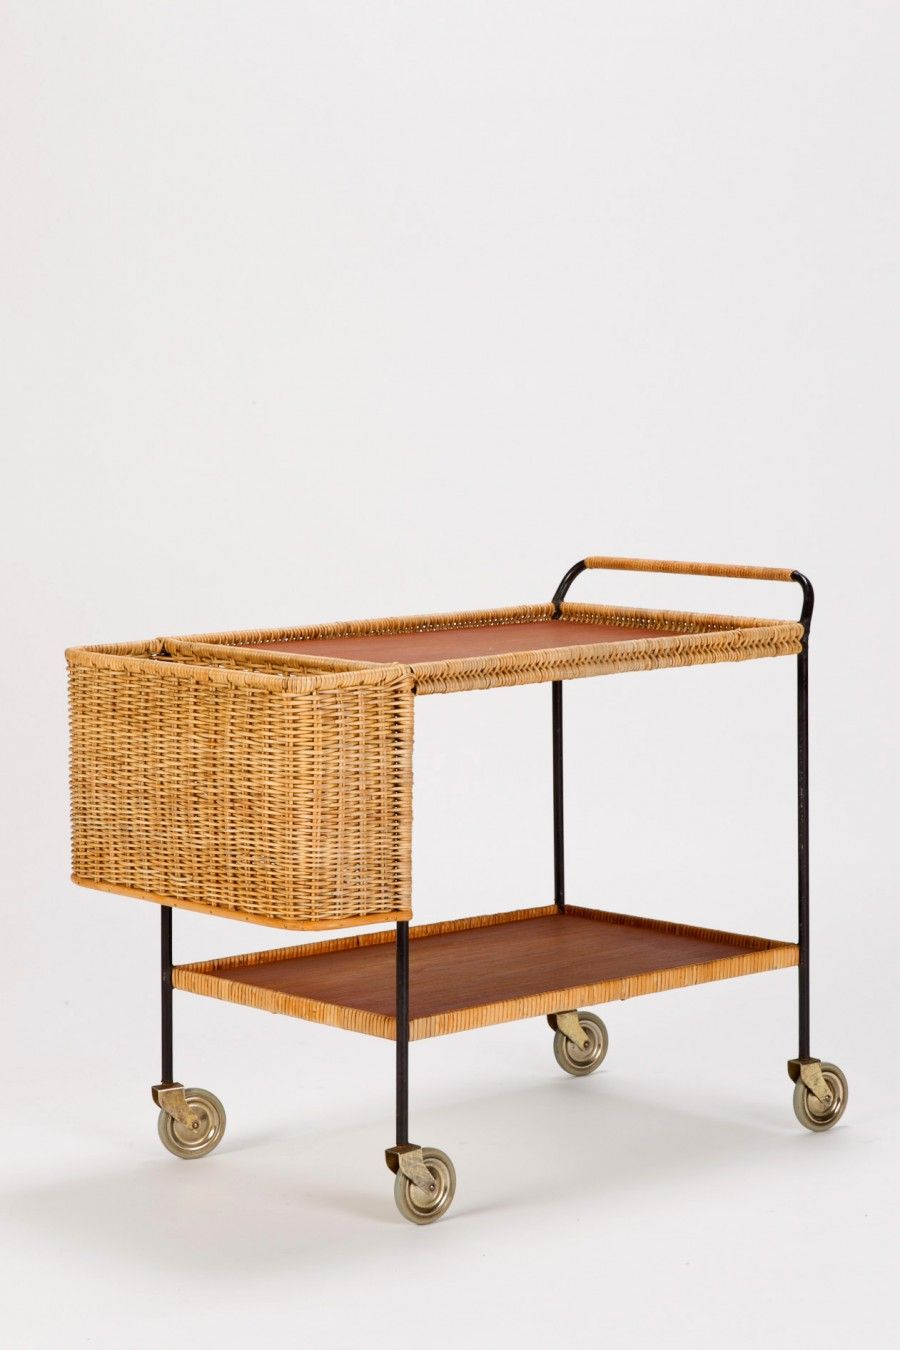 AWESOME BAR CART. CRUISINu0027 FOR BOOZINu0027 50u0027 Serving Trolley